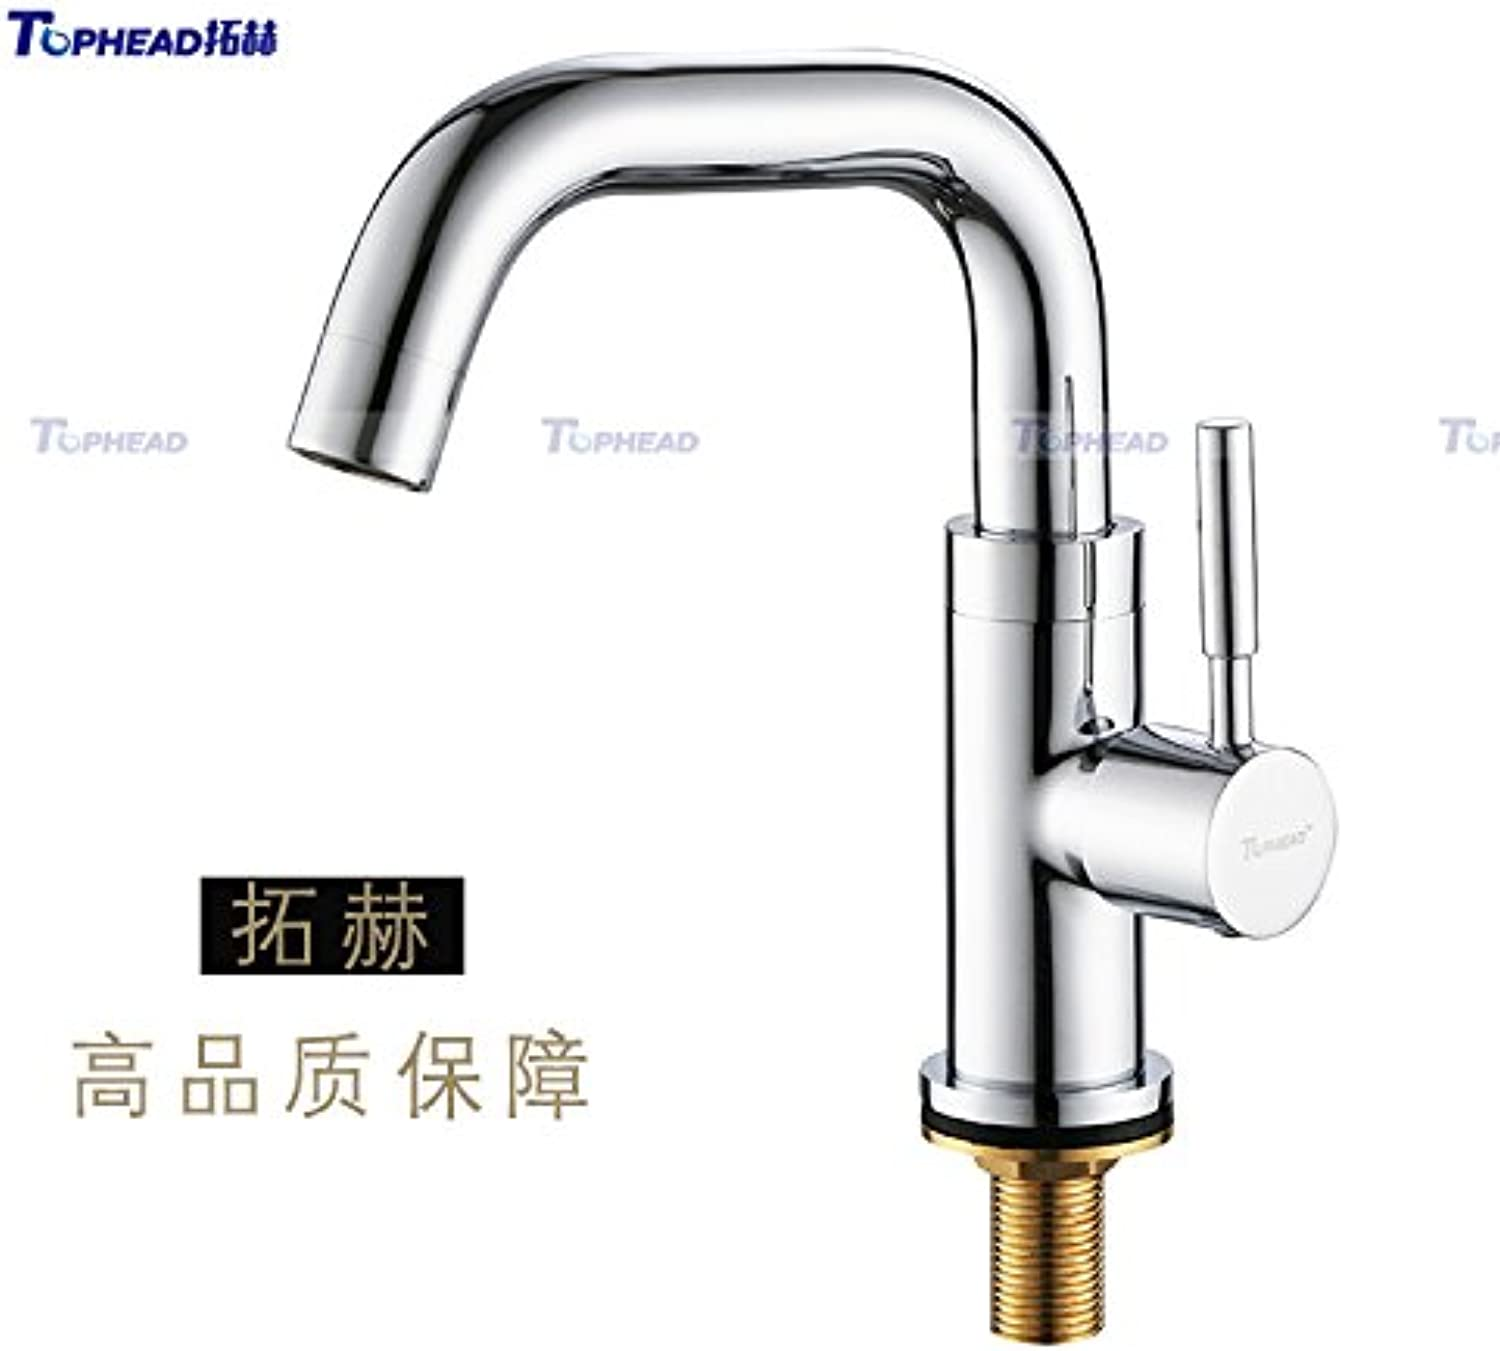 Hlluya Professional Sink Mixer Tap Kitchen Faucet Basin faucet single cold water washing basin faucet basin sink,T05B7-1